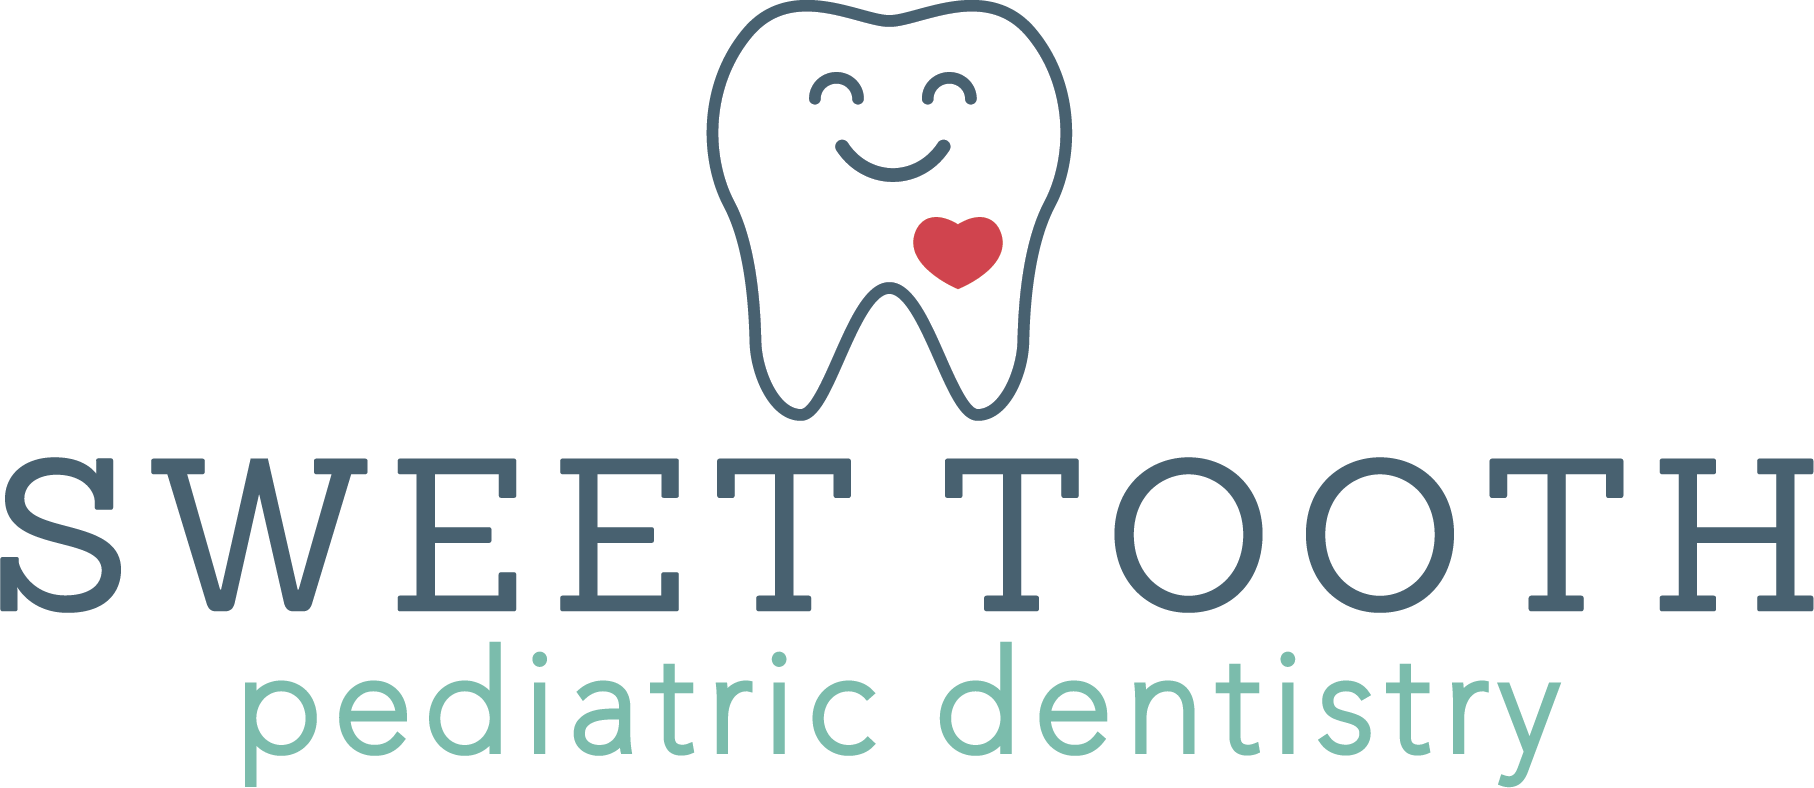 Sweet Tooth Pediatric Dentistry